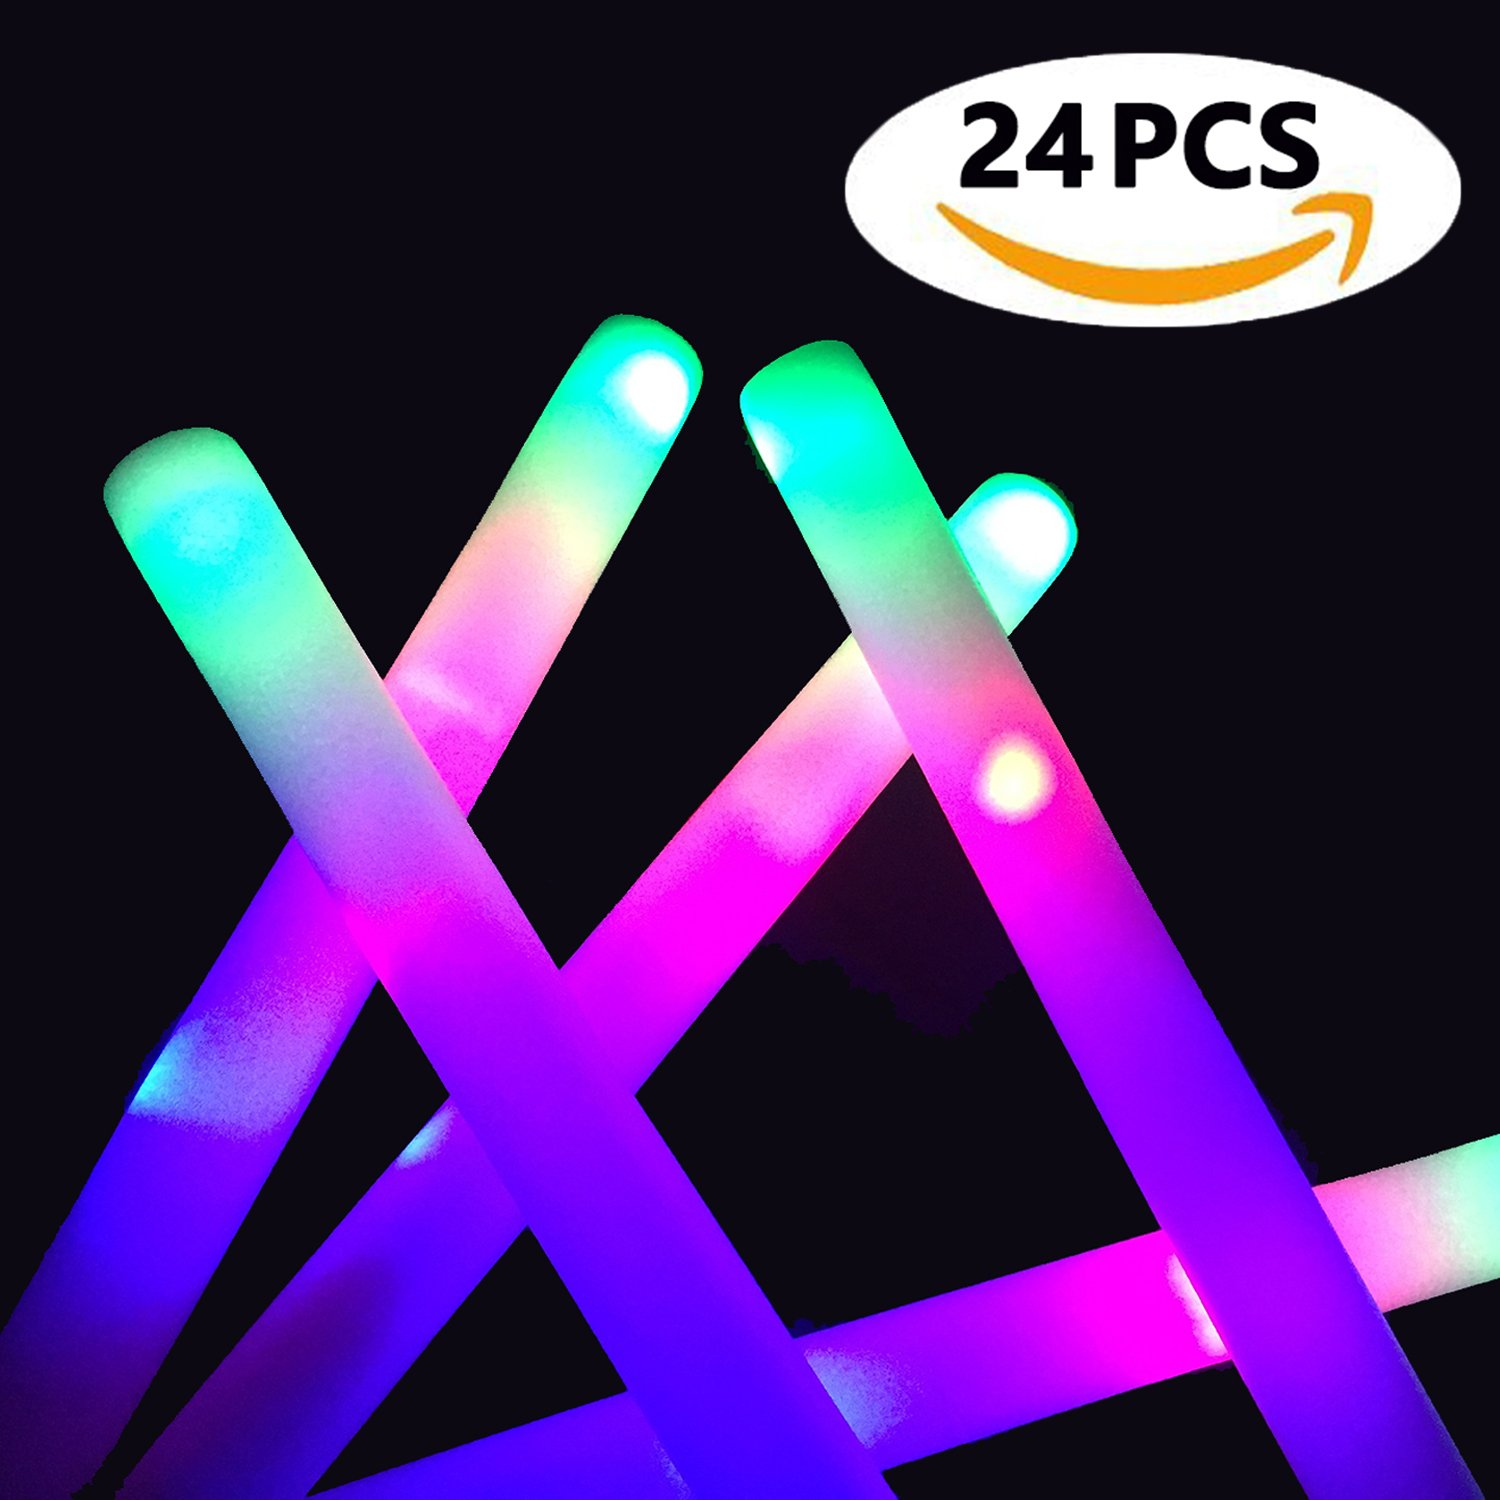 Glow Sticks Bulk - 24 Pcs LED Foam Sticks Glow Batons with 3 Modes Flashing Effect, Light Up Toys Glow in The Dark Party Supplies by ColorHome